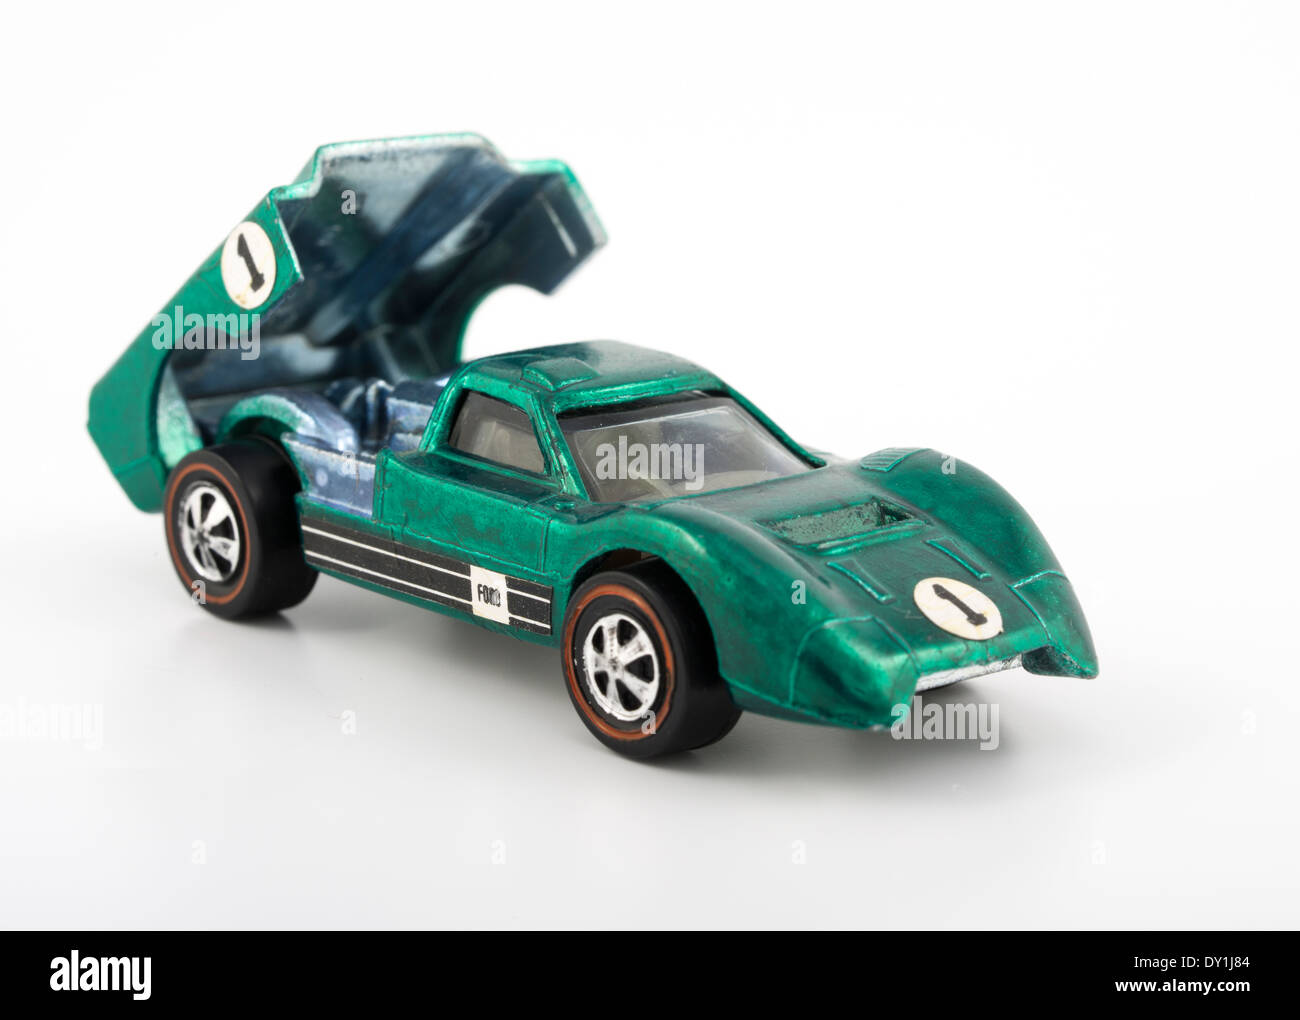 Green Ford J-Car  Hot Wheels die-cast toy cars by Mattel 1968 with Spectraflame paintwork - Stock Image